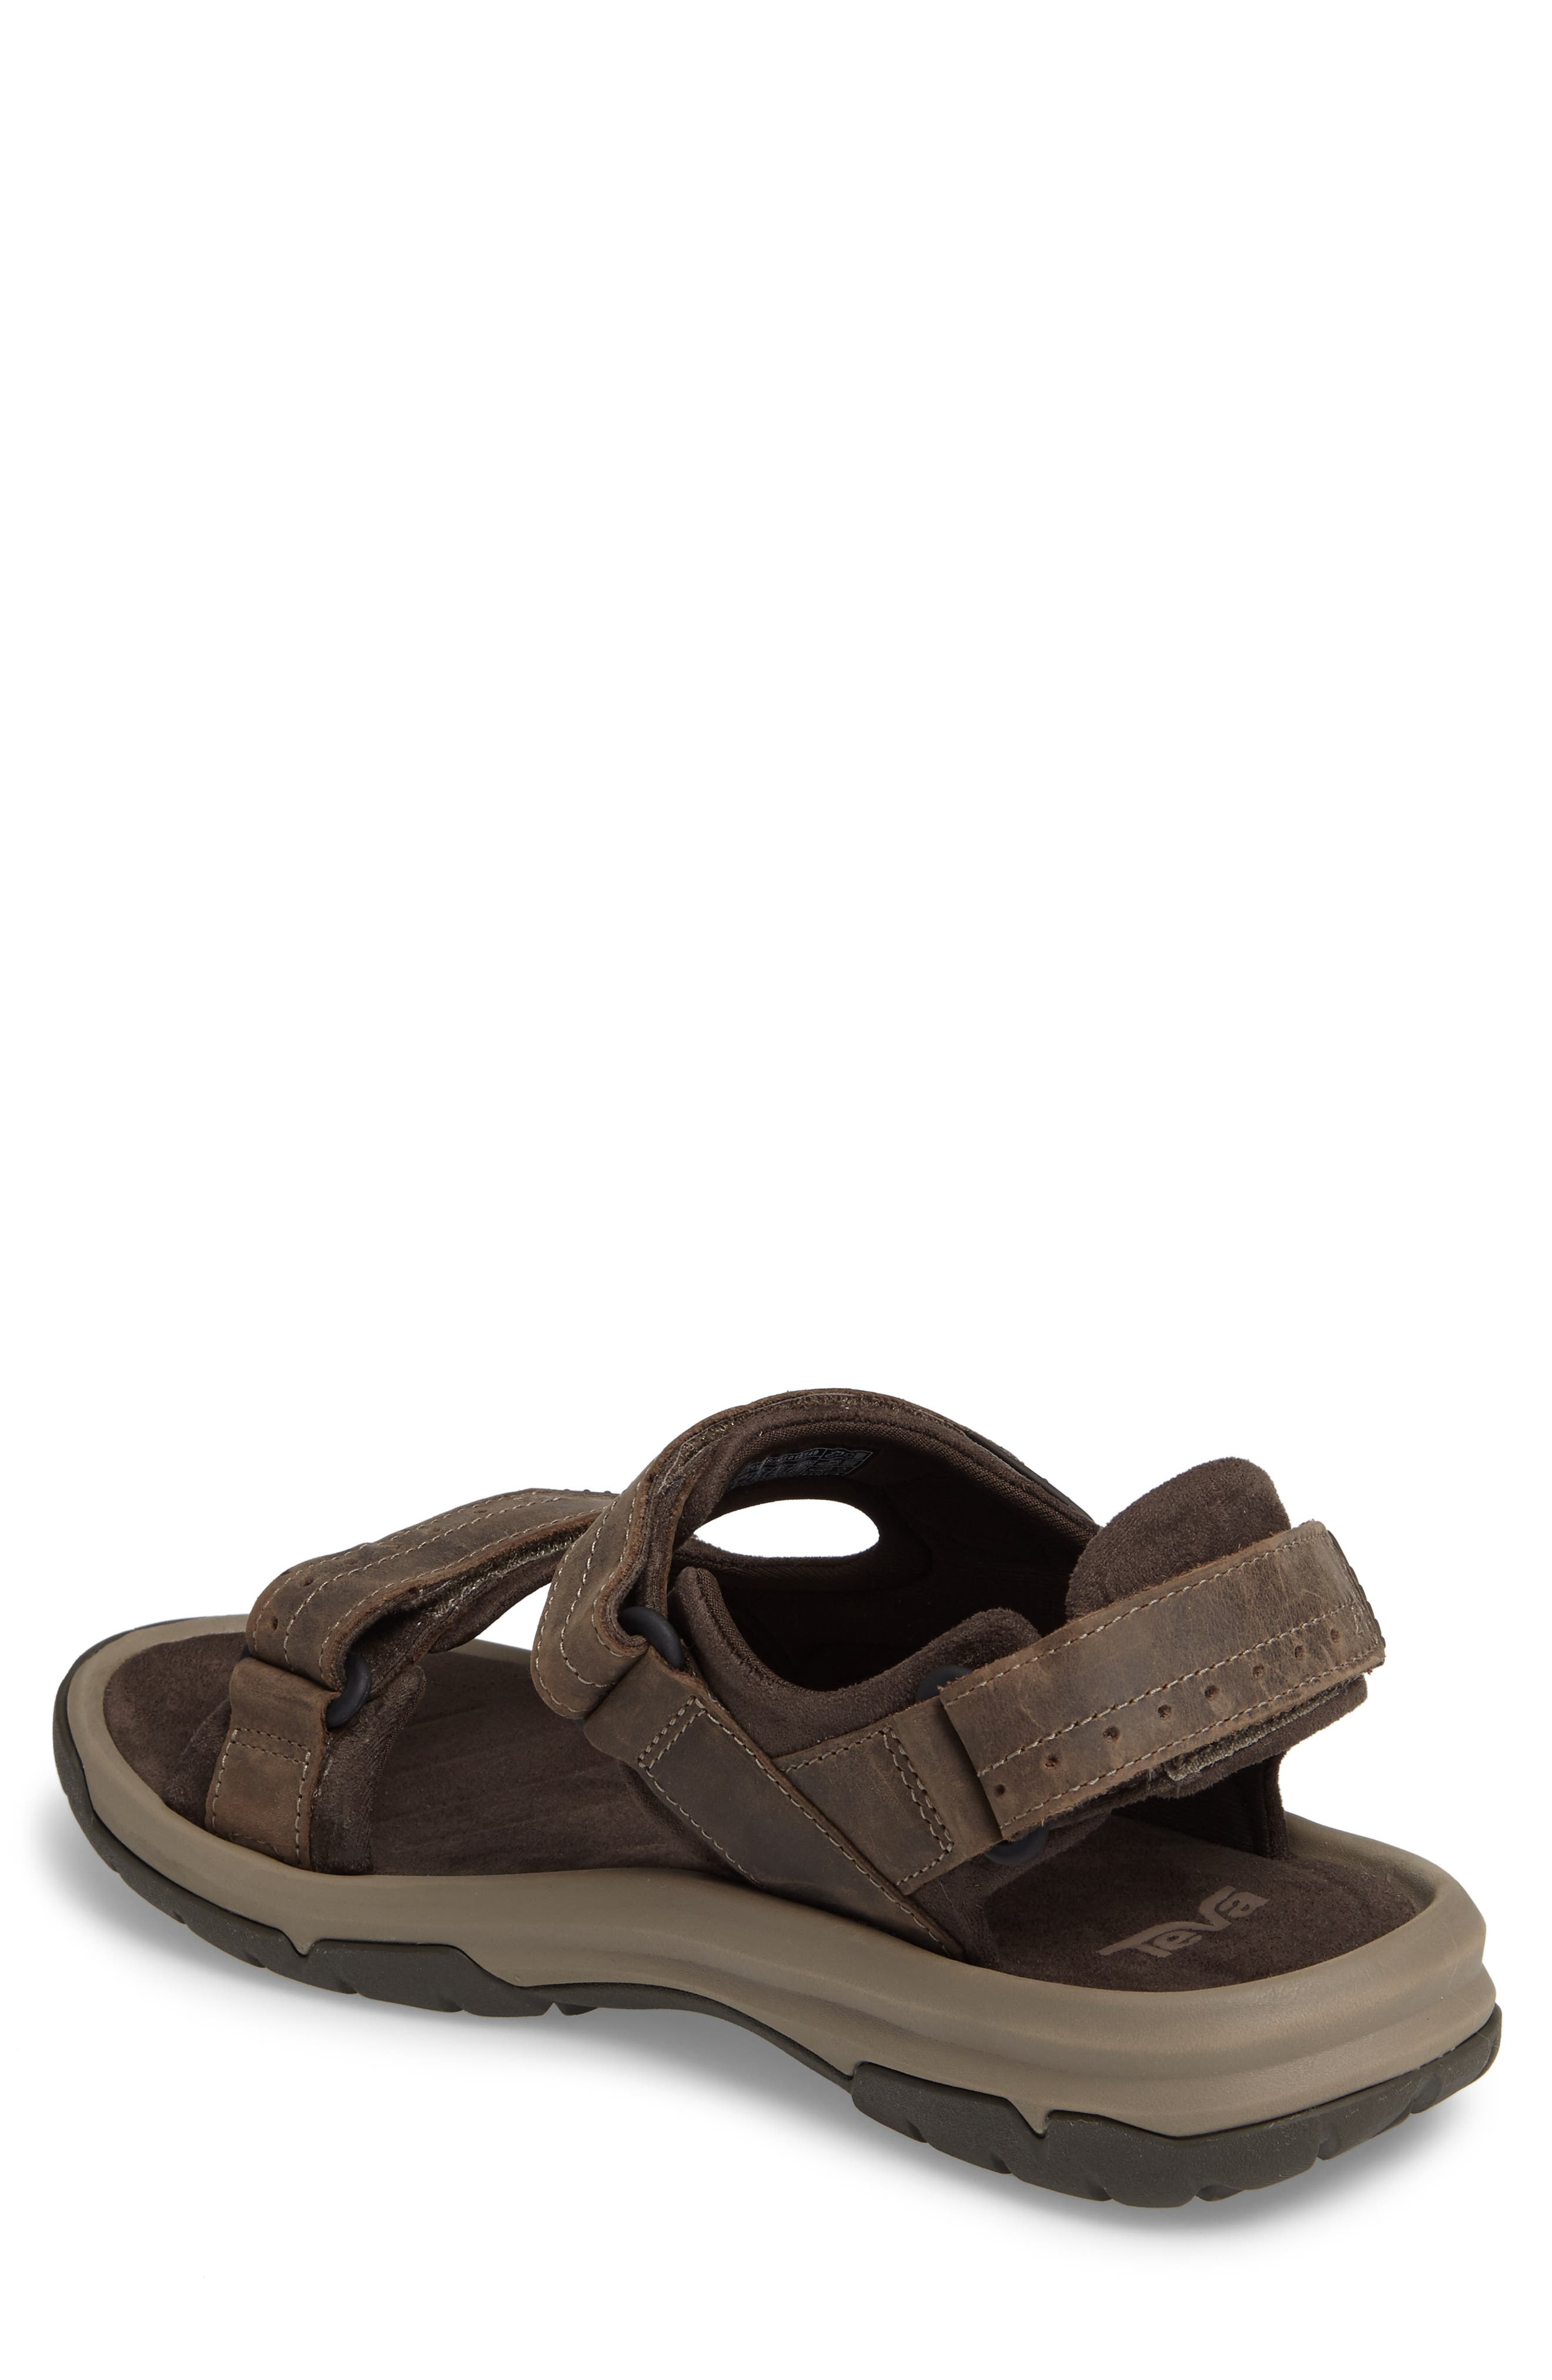 Langdon Sandal,                             Alternate thumbnail 2, color,                             WALNUT